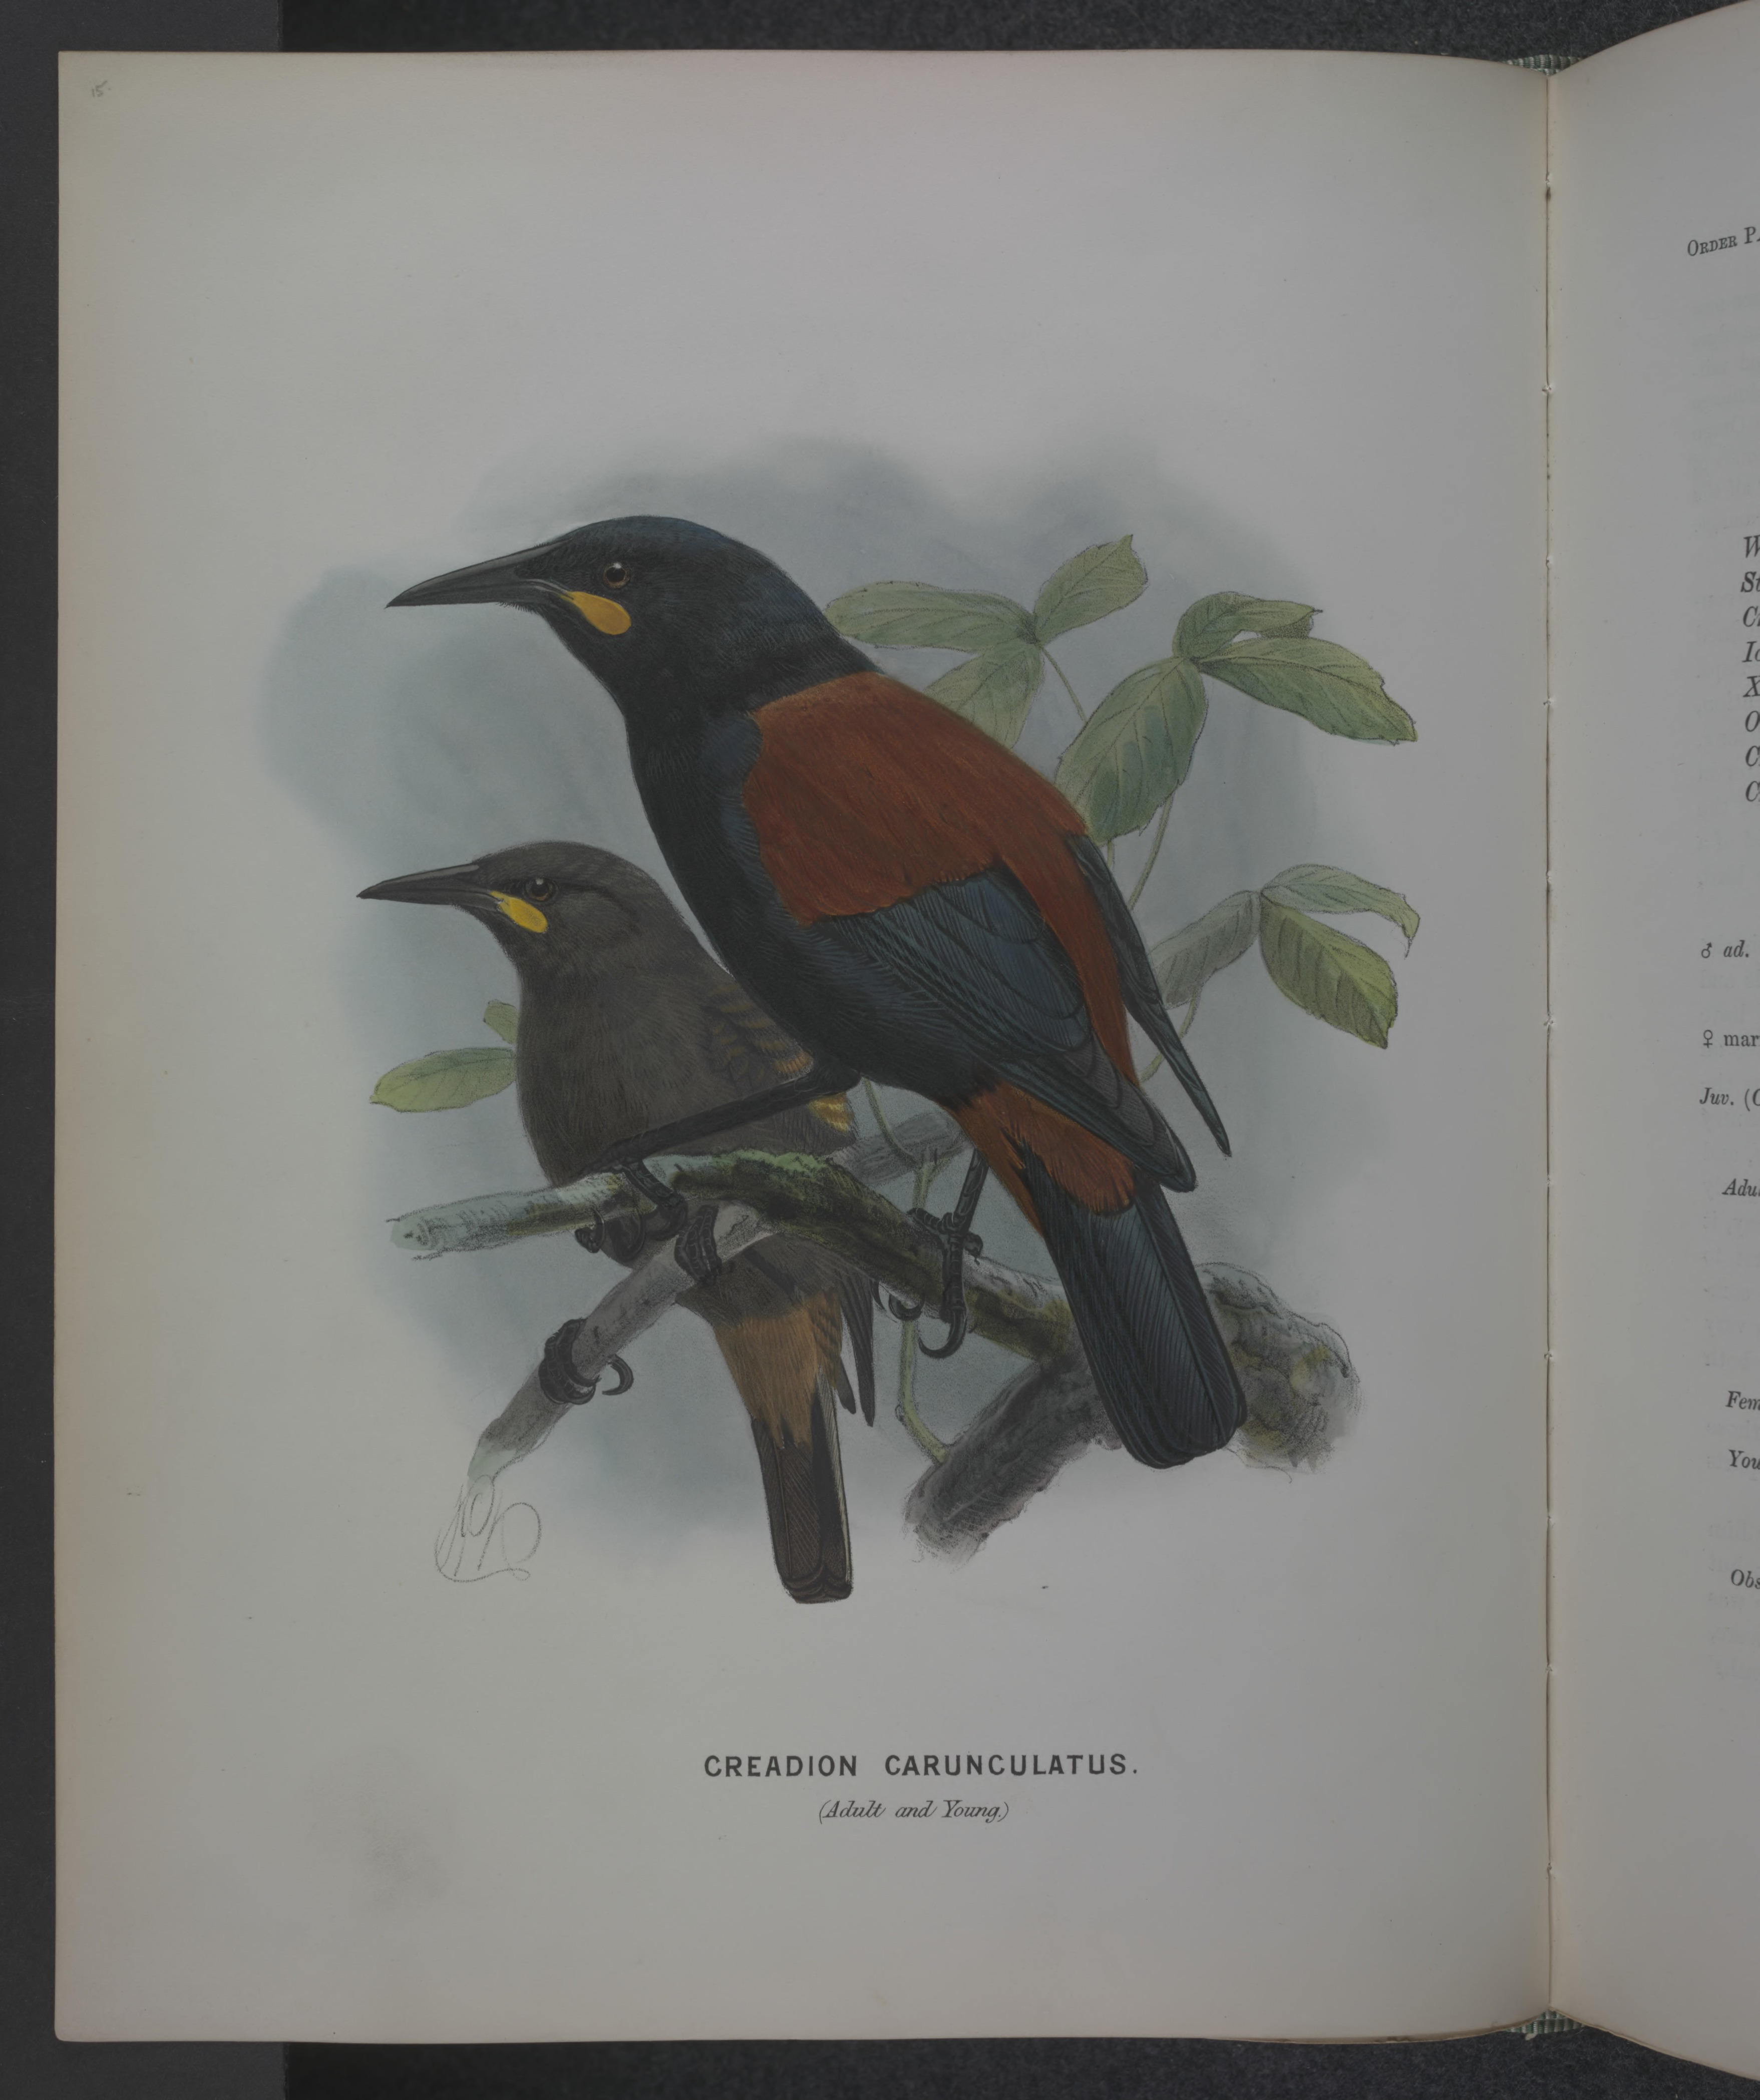 Image of South Island Saddleback